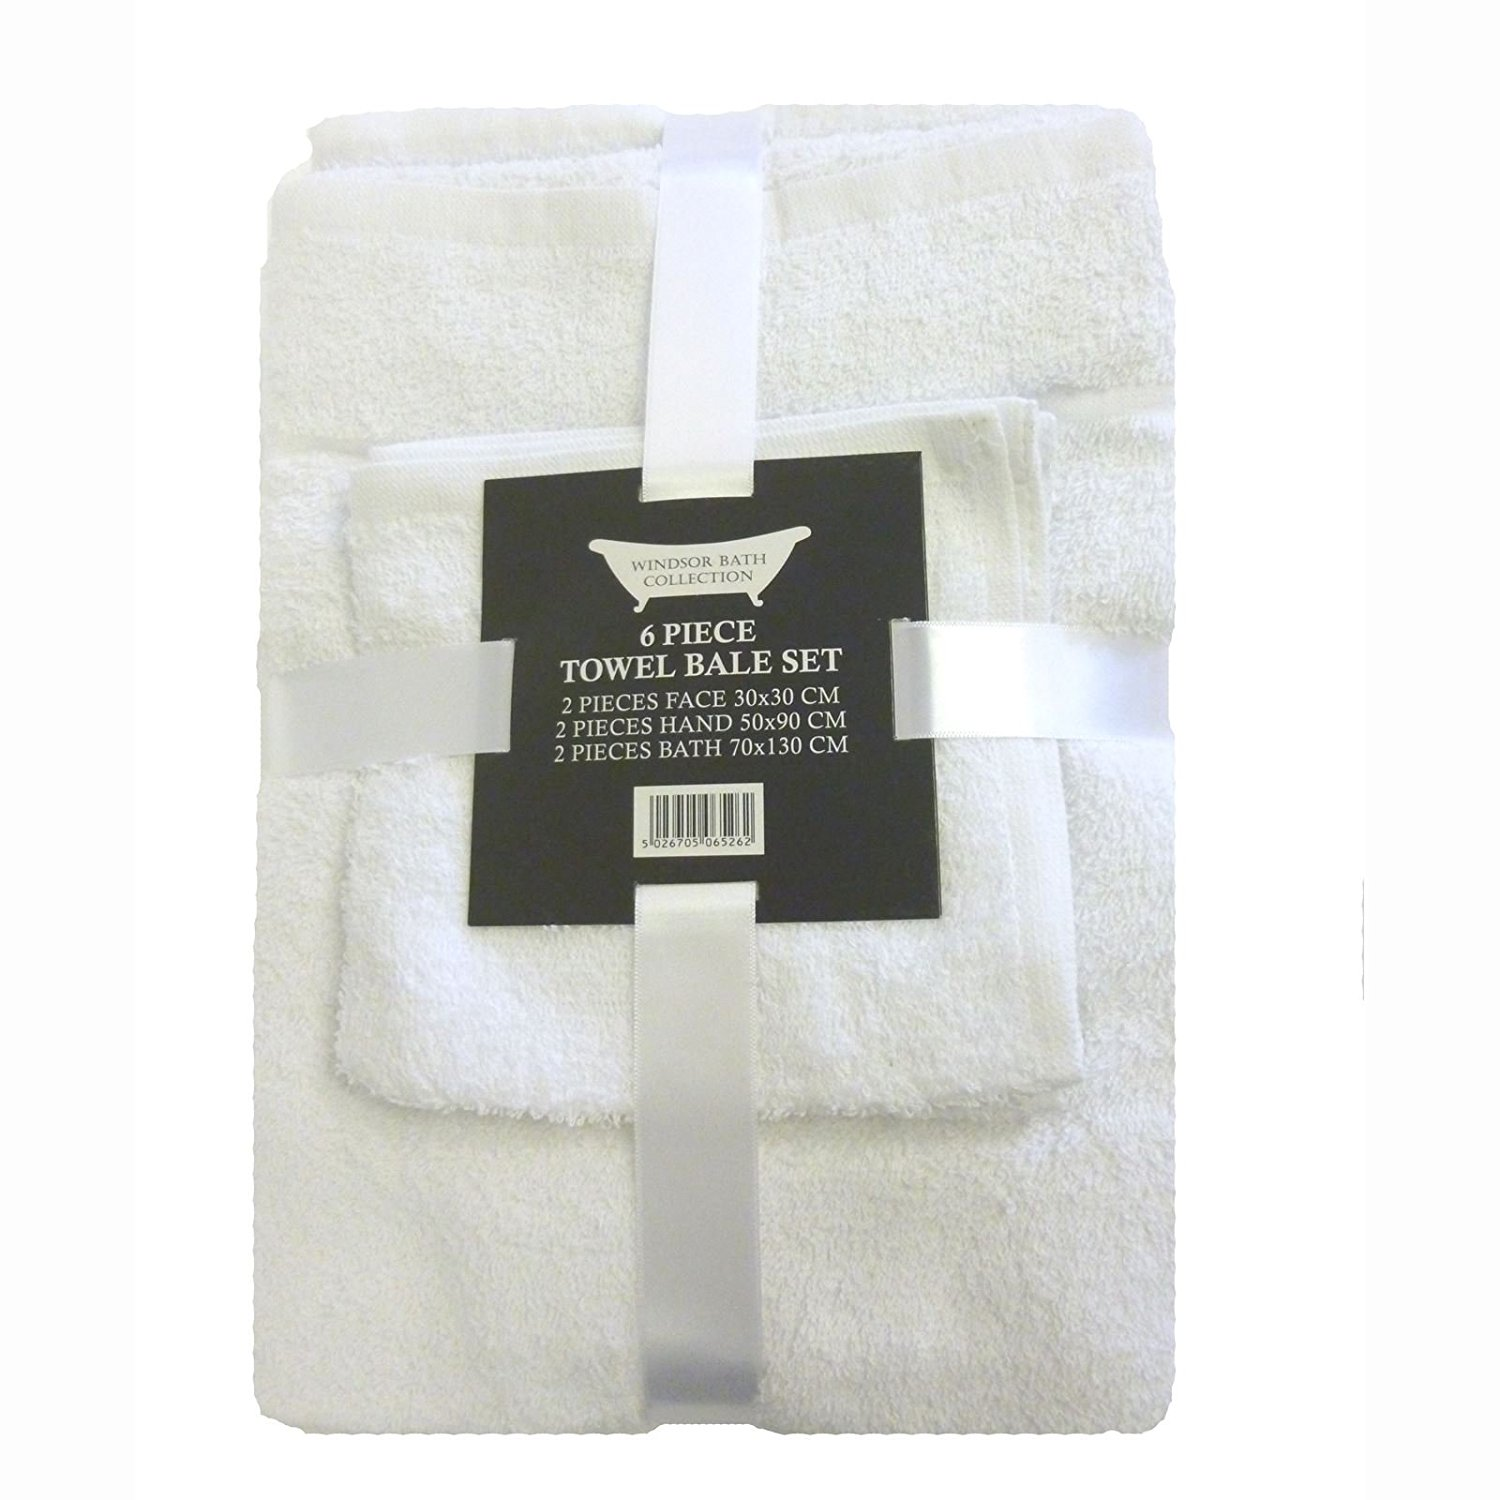 Towel Bale 6 piece (2 face, 2 hand, 2 bath) 450gsm 100% Cotton - White